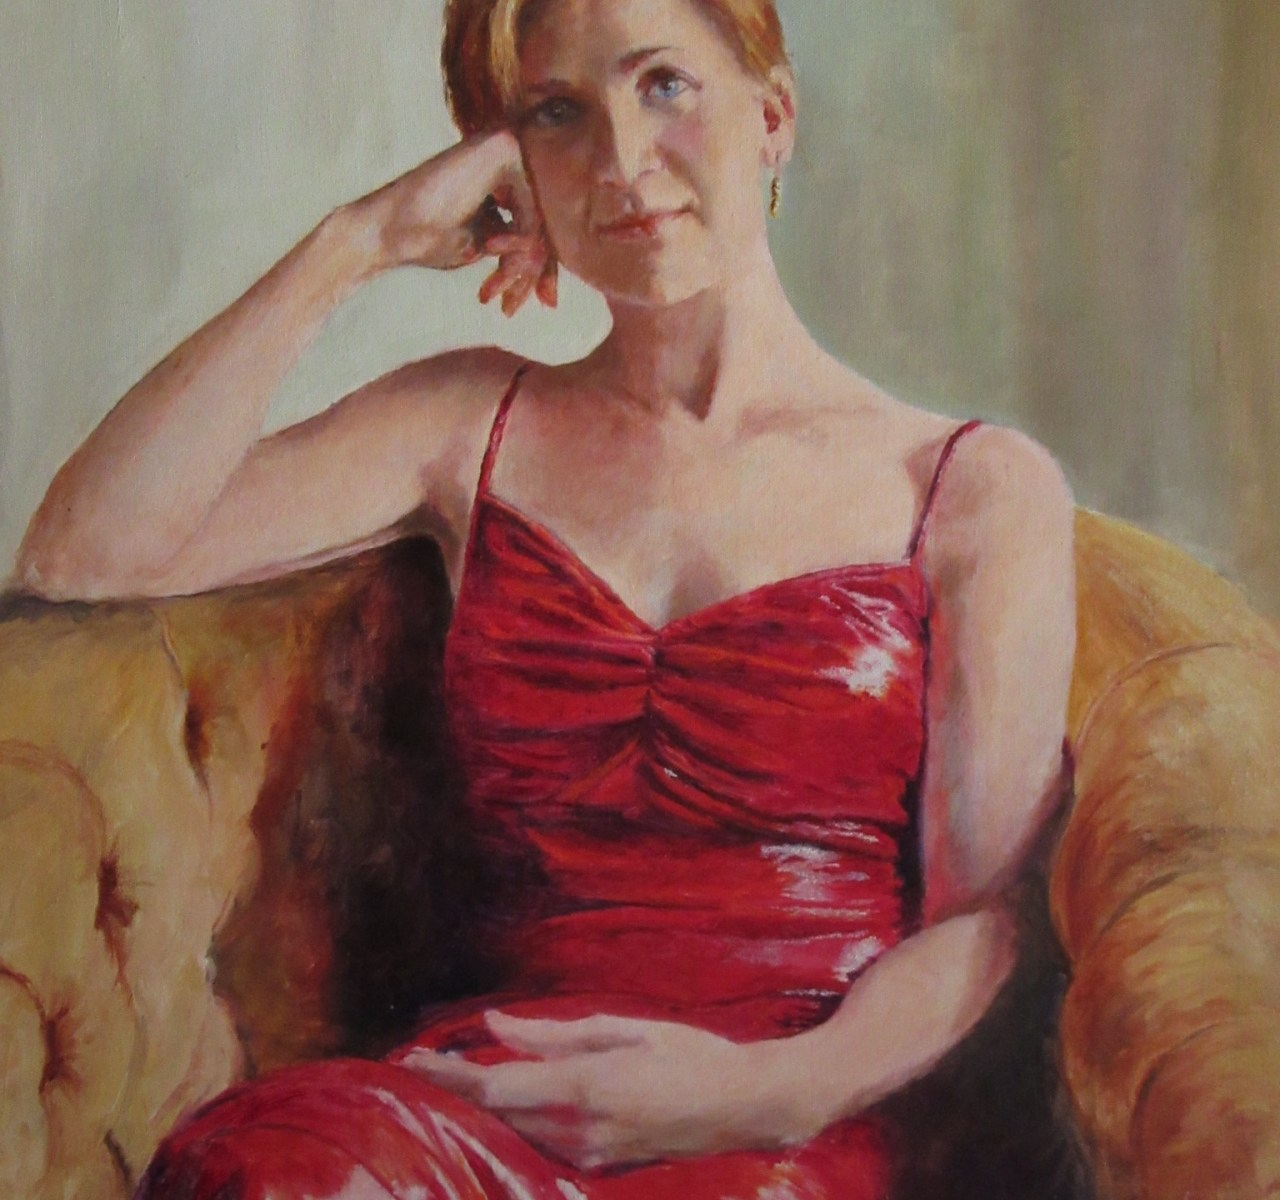 Bronwen in Red - A Portrait by Heidi Beyers